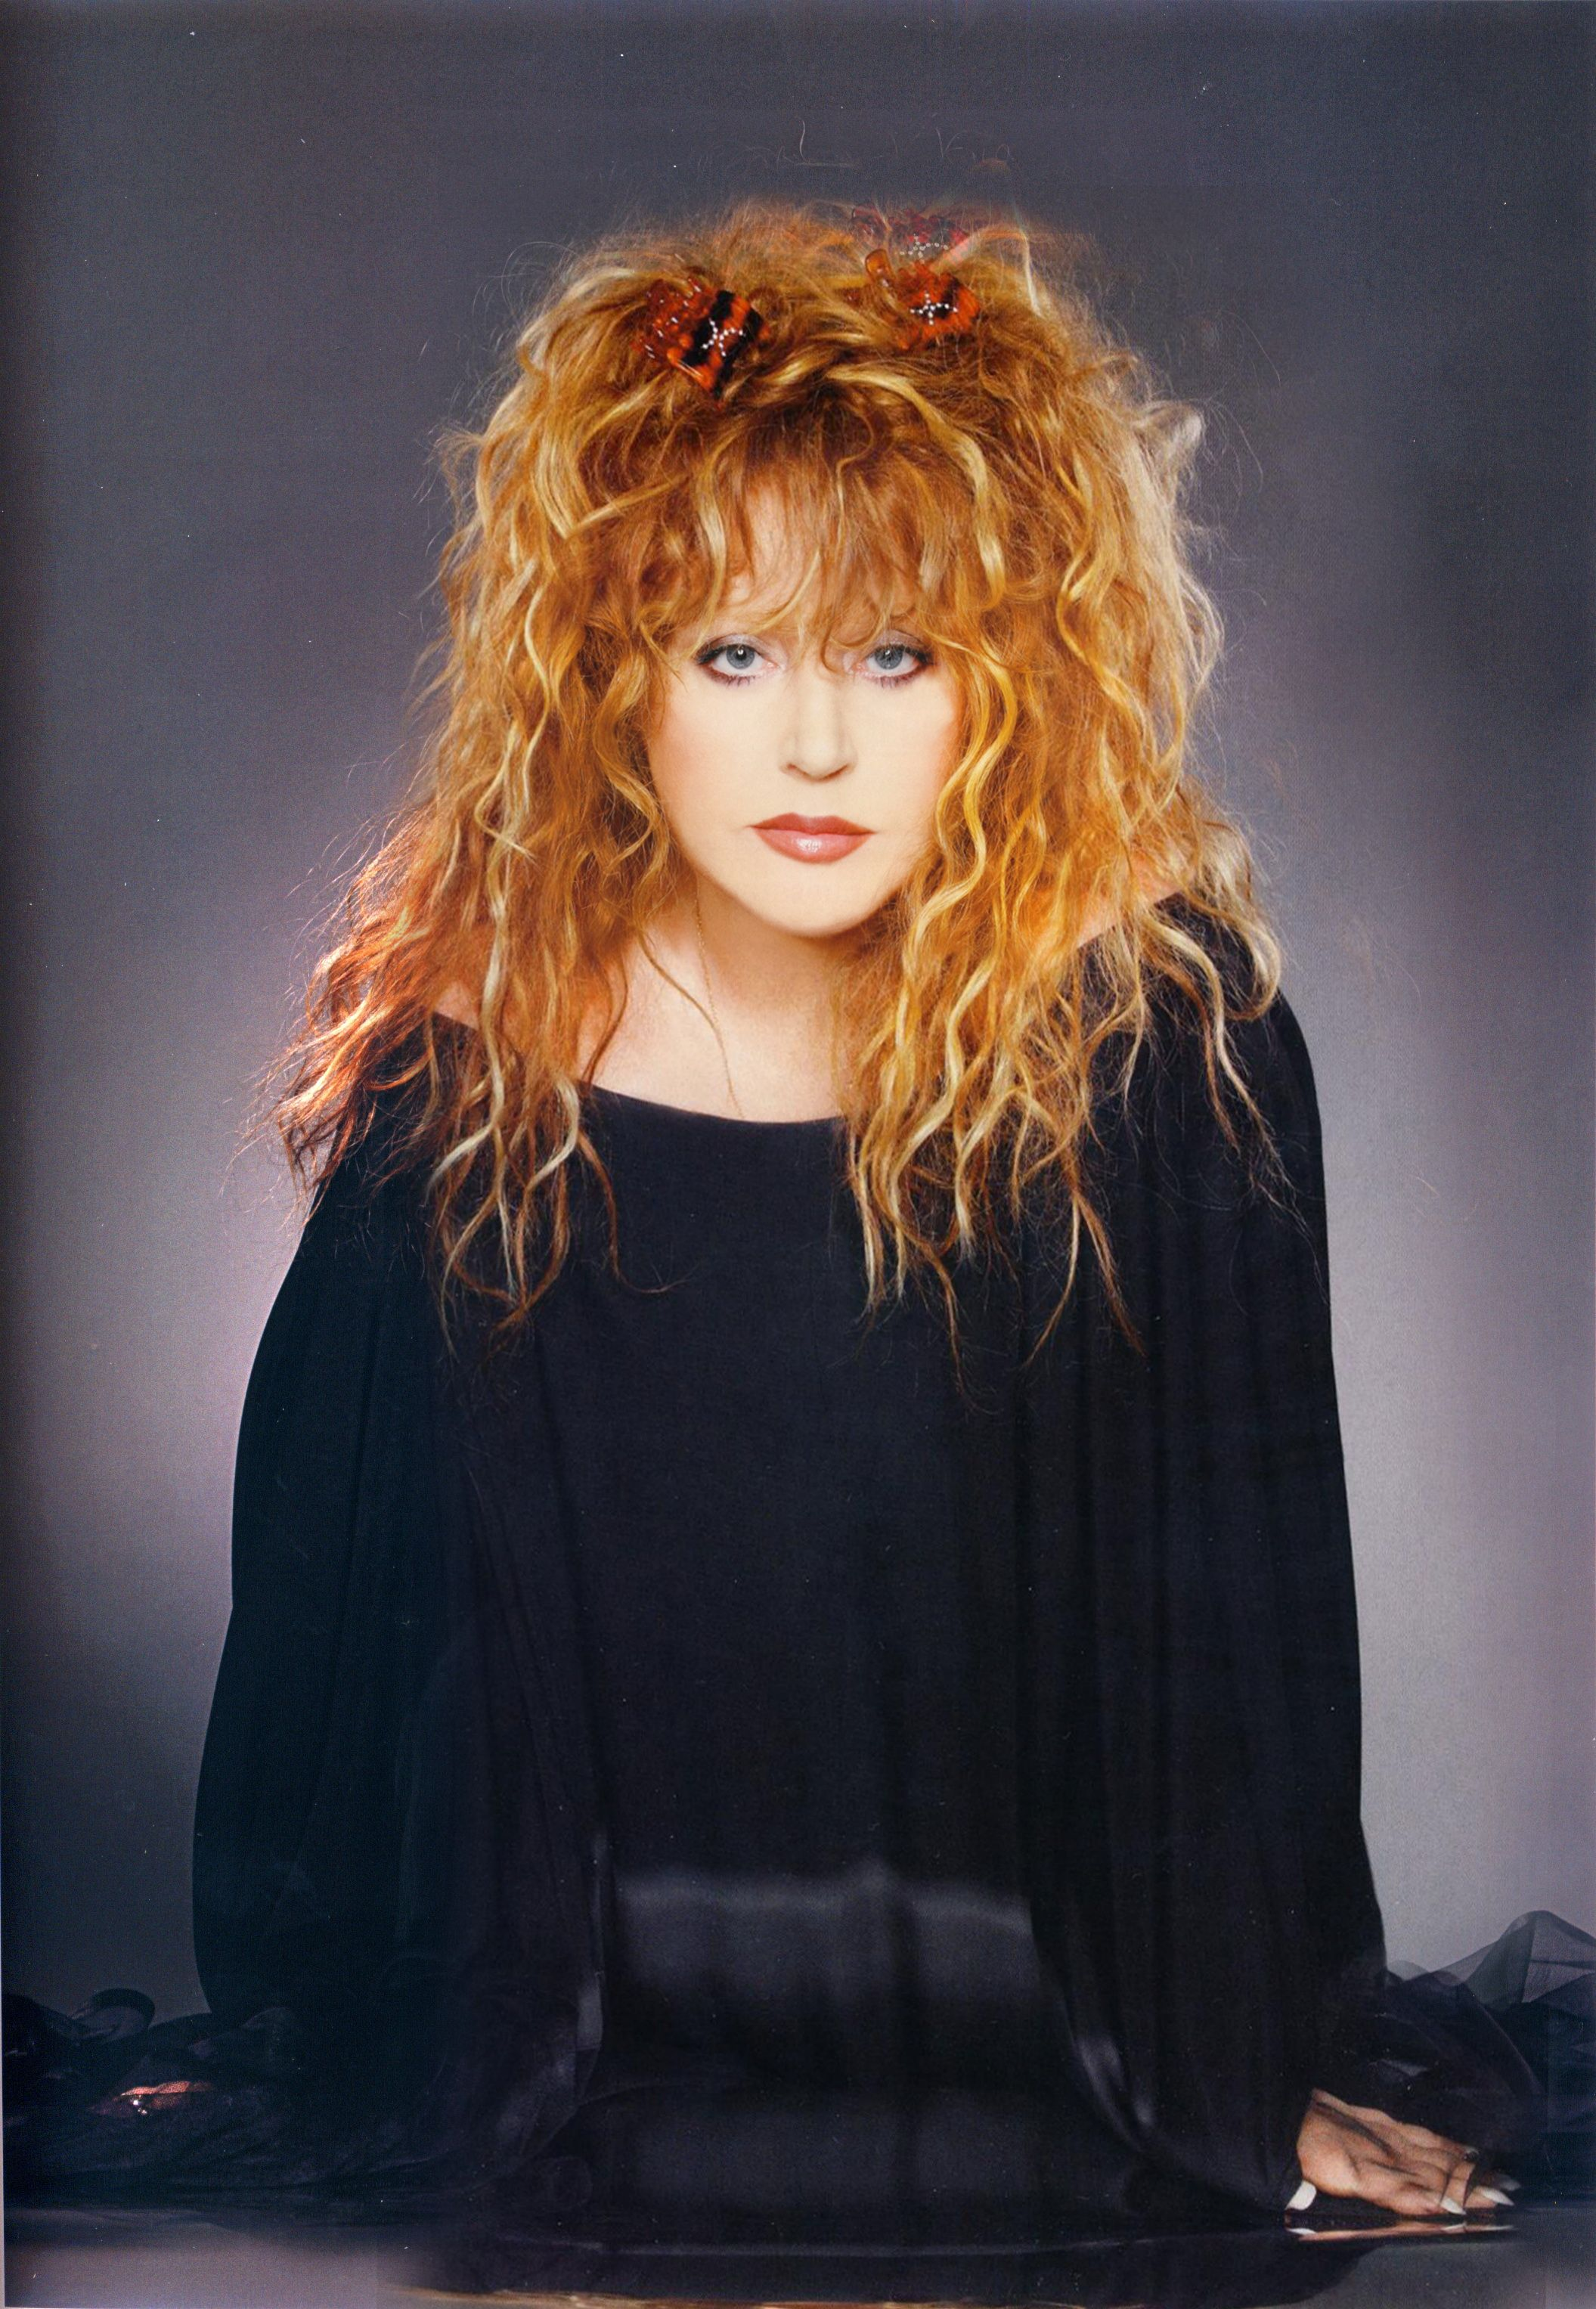 Alla Pugacheva charmed in the image of youth 06/16/2018 84